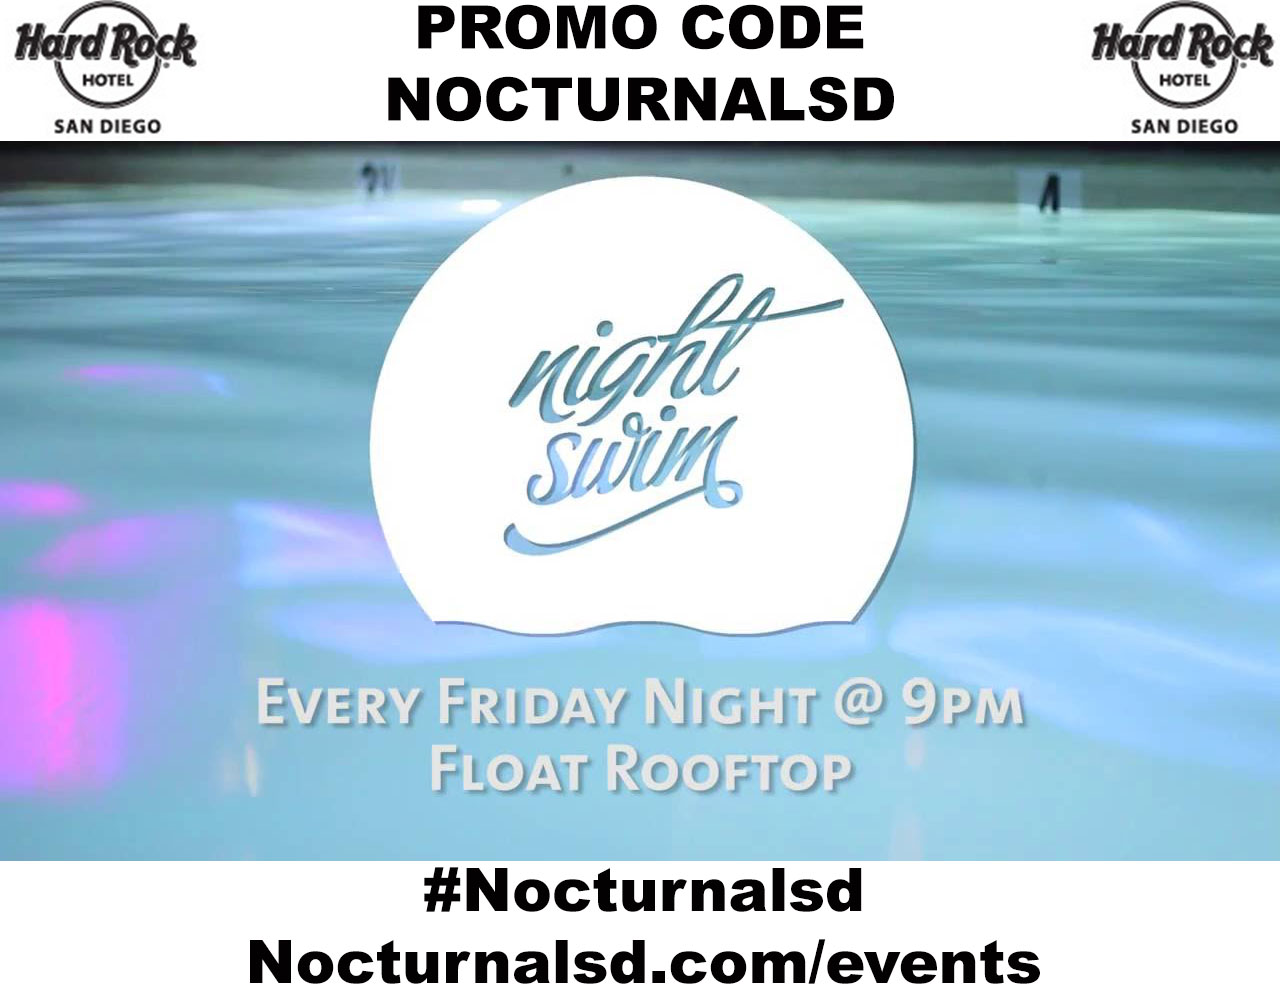 Night Swim Hard Rock Promo Code NOCTURNALSD 2018 San Diego hotel guest vip guest list free tickets